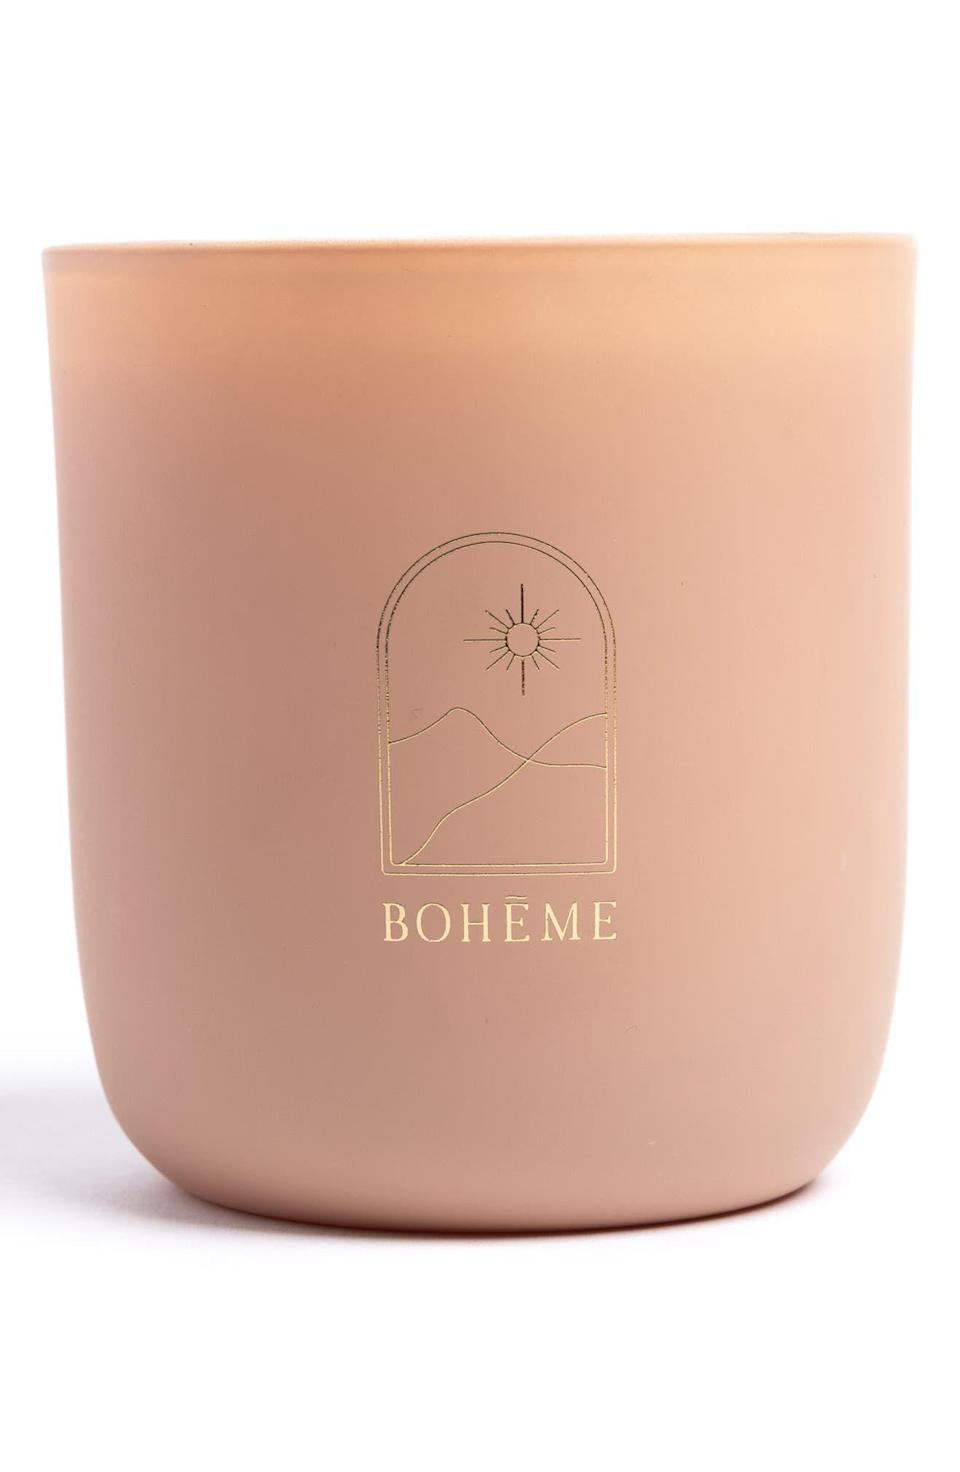 "<p><strong>Bohéme</strong></p><p>nordstrom.com</p><p><strong>$45.00</strong></p><p><a href=""https://go.redirectingat.com?id=74968X1596630&url=https%3A%2F%2Fwww.nordstrom.com%2Fs%2Fboheme-wanderlust-candle%2F5809773&sref=https%3A%2F%2Fwww.oprahdaily.com%2Flife%2Fg36055948%2Fsummer-candles%2F"" rel=""nofollow noopener"" target=""_blank"" data-ylk=""slk:SHOP NOW"" class=""link rapid-noclick-resp"">SHOP NOW</a></p><p>Not only is the container beautiful, but the smoky smells of tobacco and leather, layered with refreshing bergamot, will transport you straight to Havana.</p>"